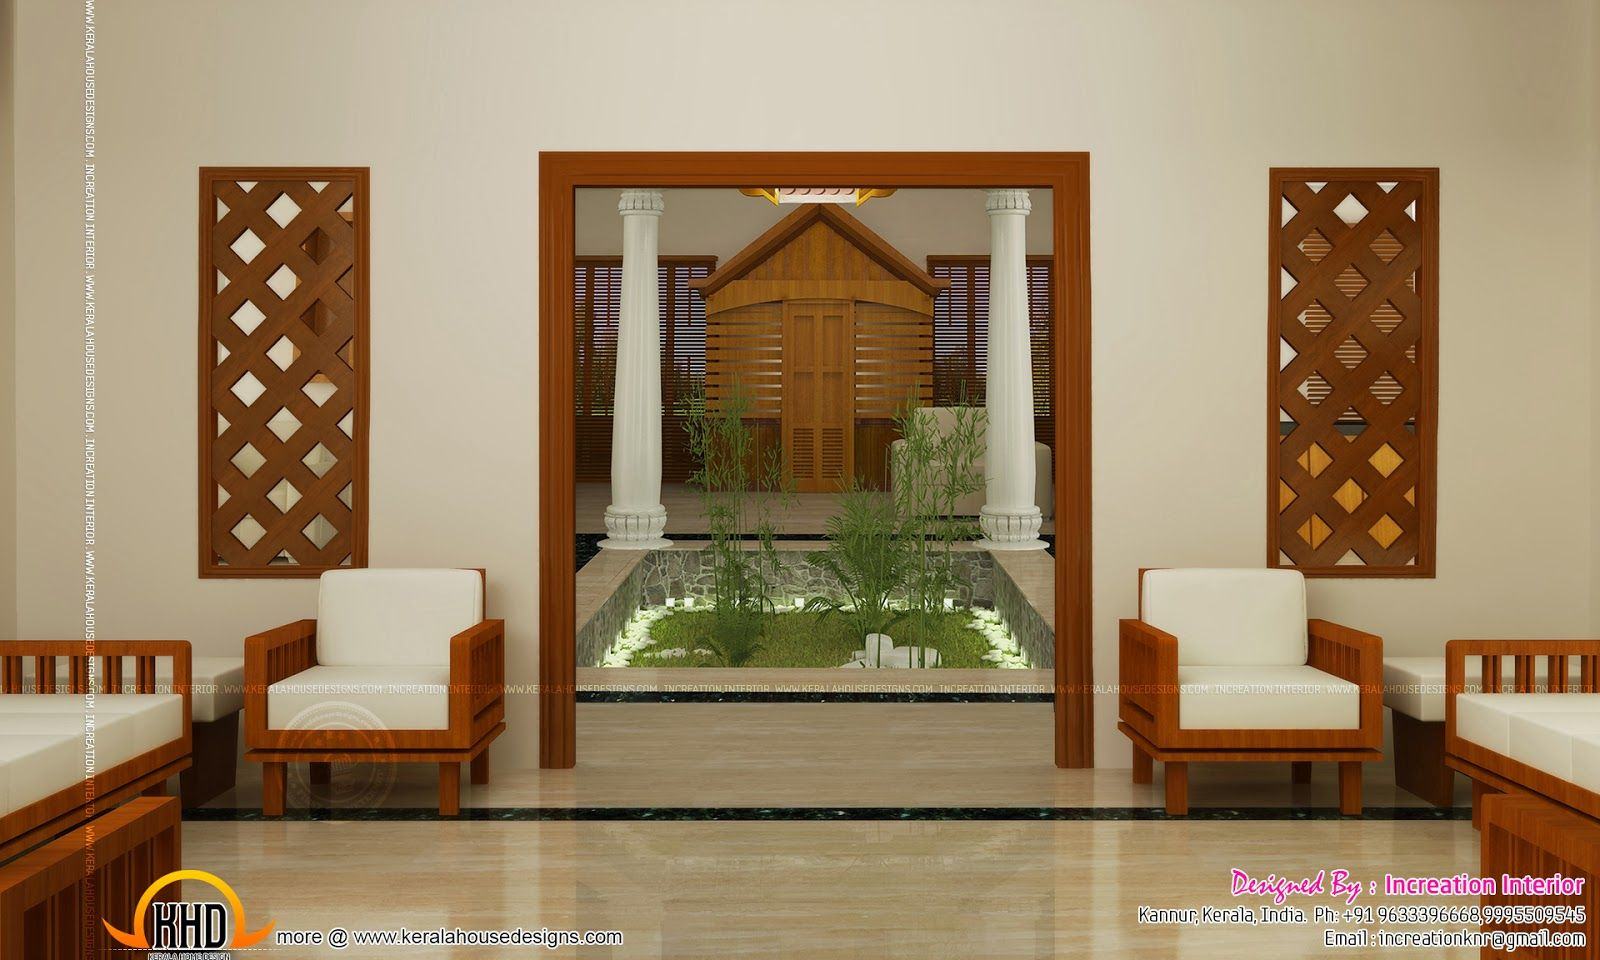 beautiful houses interior in kerala   Google Search. beautiful houses interior in kerala   Google Search   courtyard